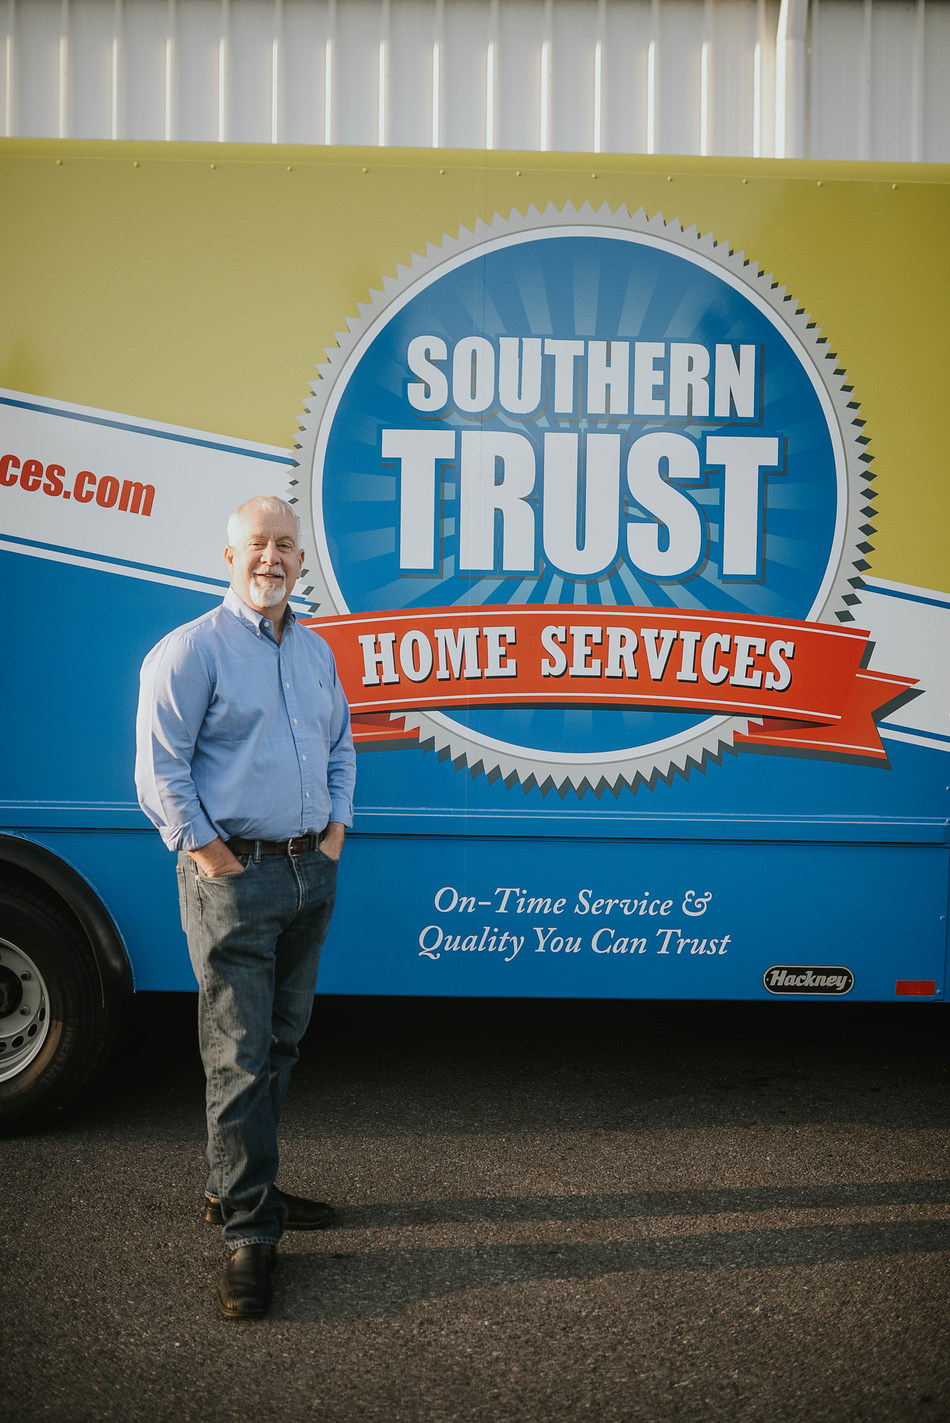 In honor of National Fire Prevention Week, Roanoke-based Southern Trust Home Services is offering heating safety tips and advice to southern Virginia homeowners.